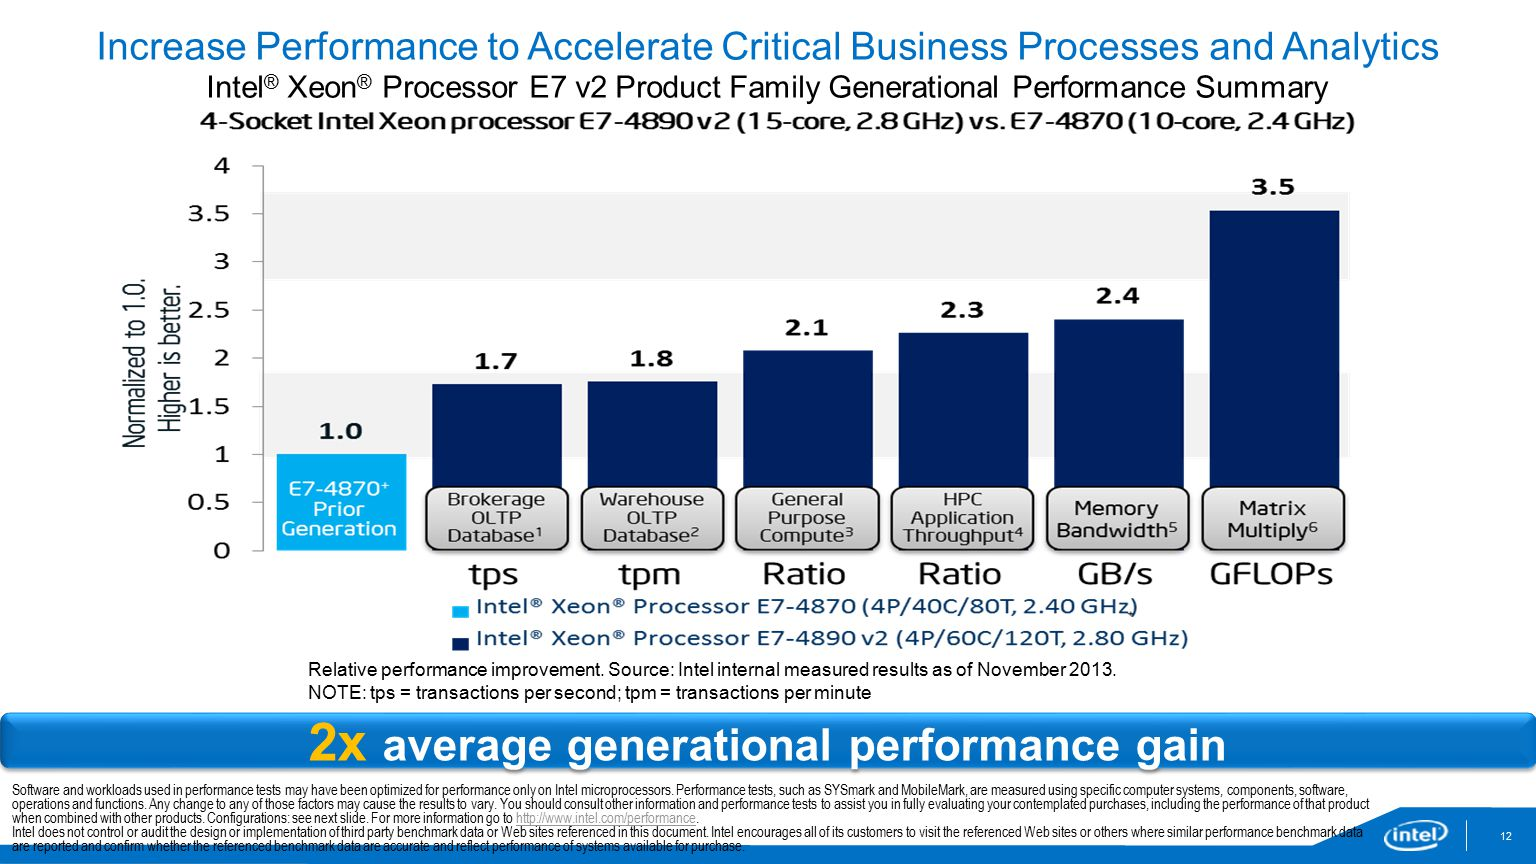 2x average generational performance gain Increase Performance to Accelerate Critical Business Processes and Analytics Intel ® Xeon ® Processor E7 v2 Product Family Generational Performance Summary Relative performance improvement.